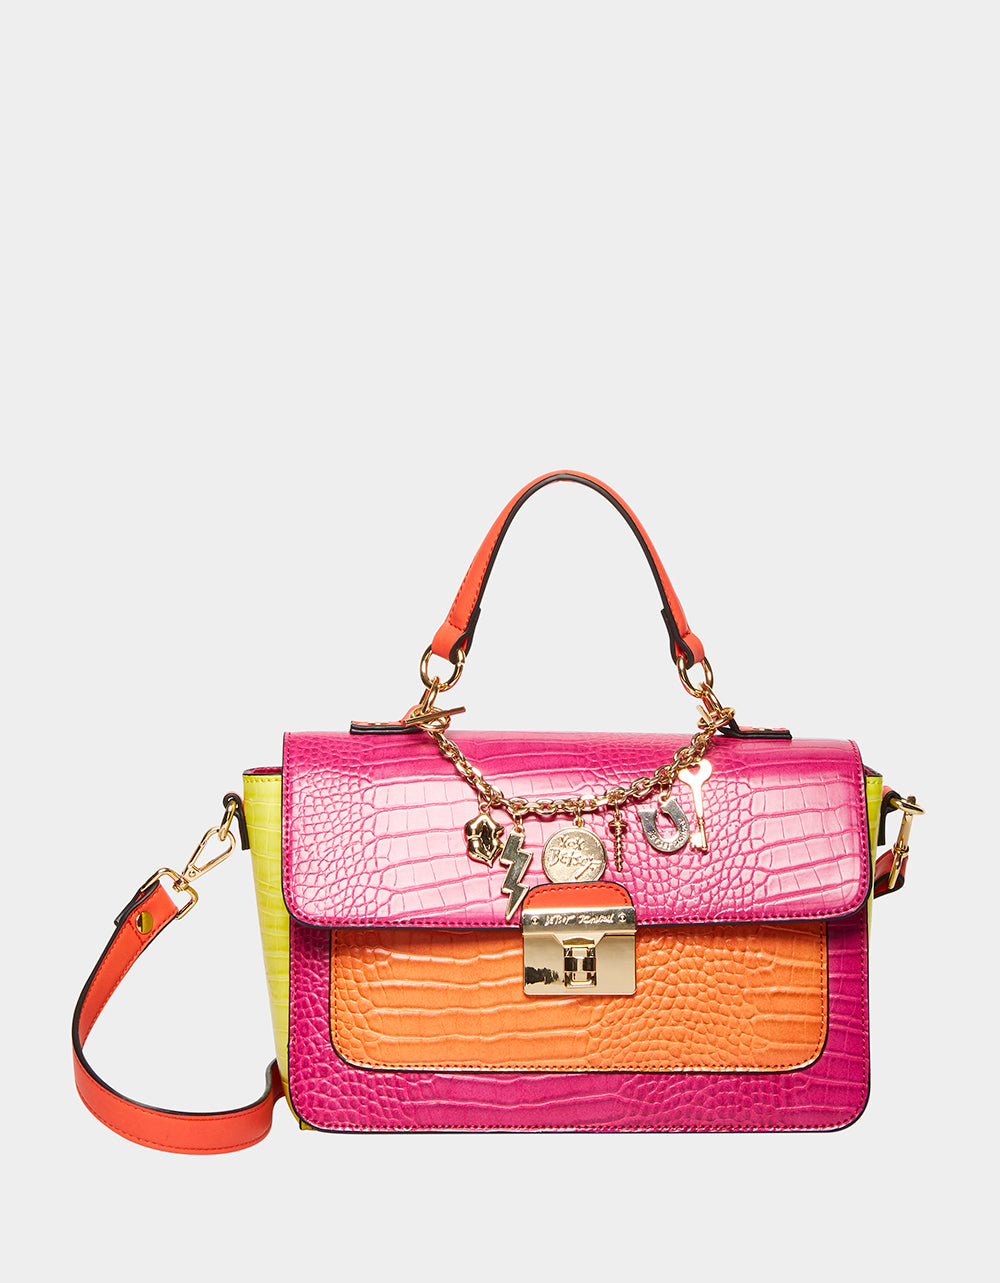 Betsey Johnson: 30% off Sitewide from March 25th – 28th